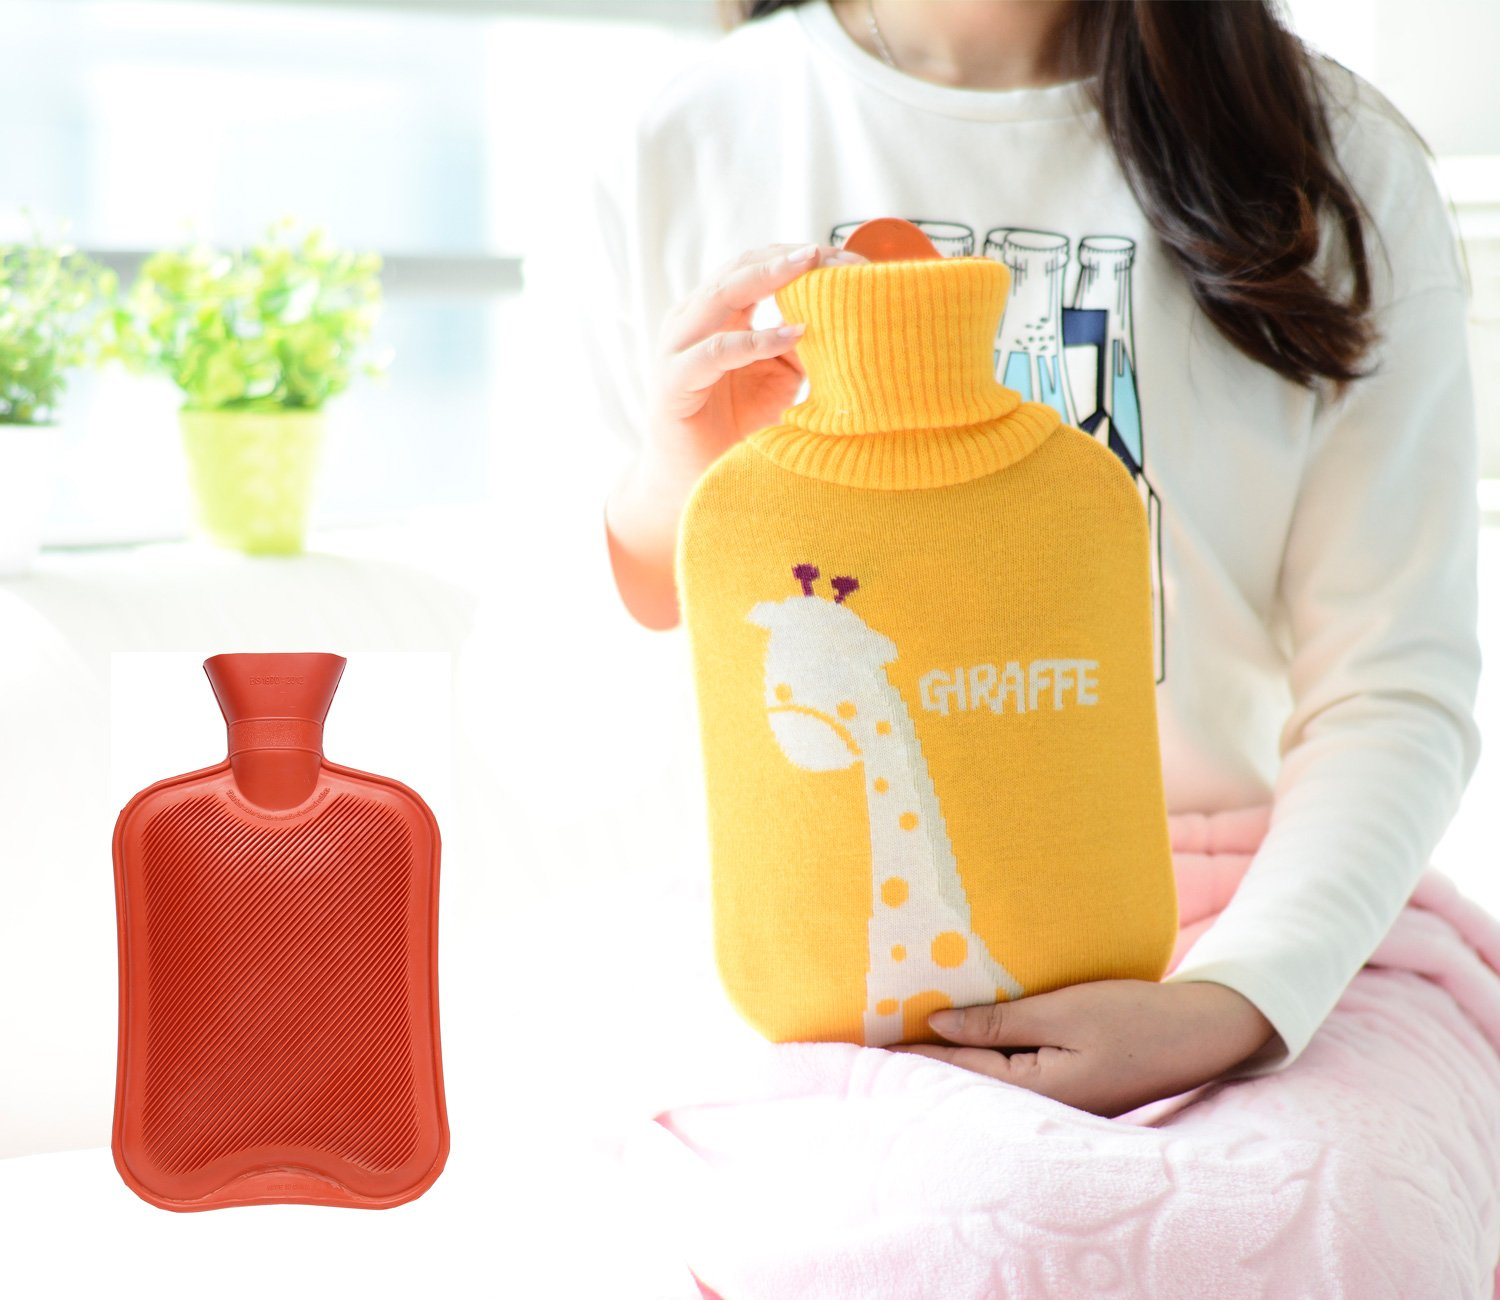 HomeIdeas 2 Liter Classic 100% Natural Rubber Hot Water Bottle with Cartoon Knitted Cover (2L, Red Bottle + Giraffe Cover)